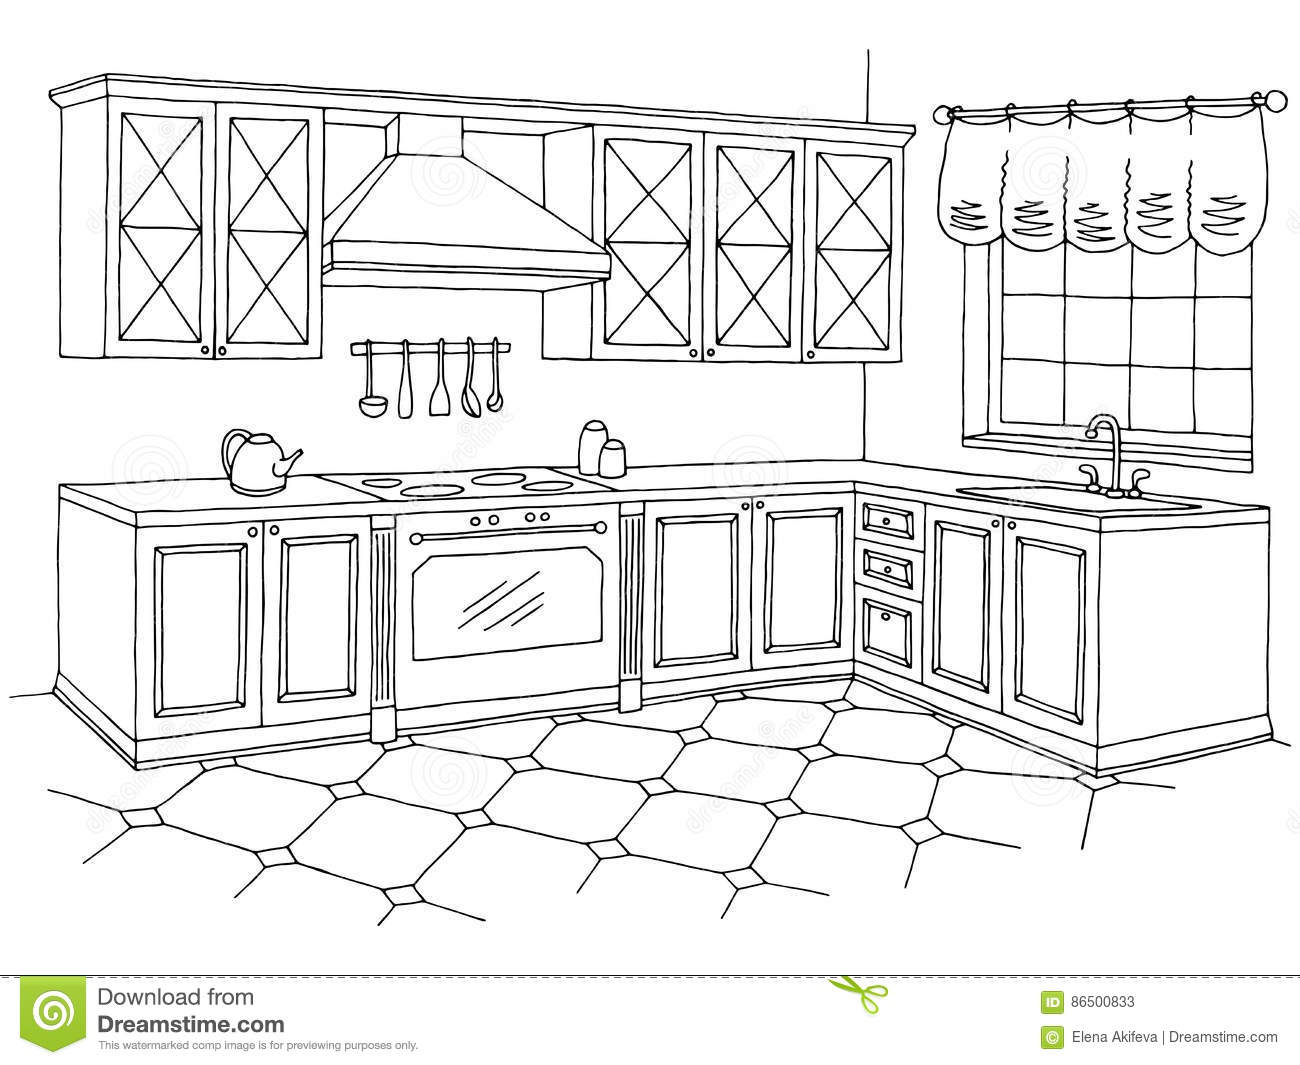 Kitchen Graphic Room Interior Black White Sketch